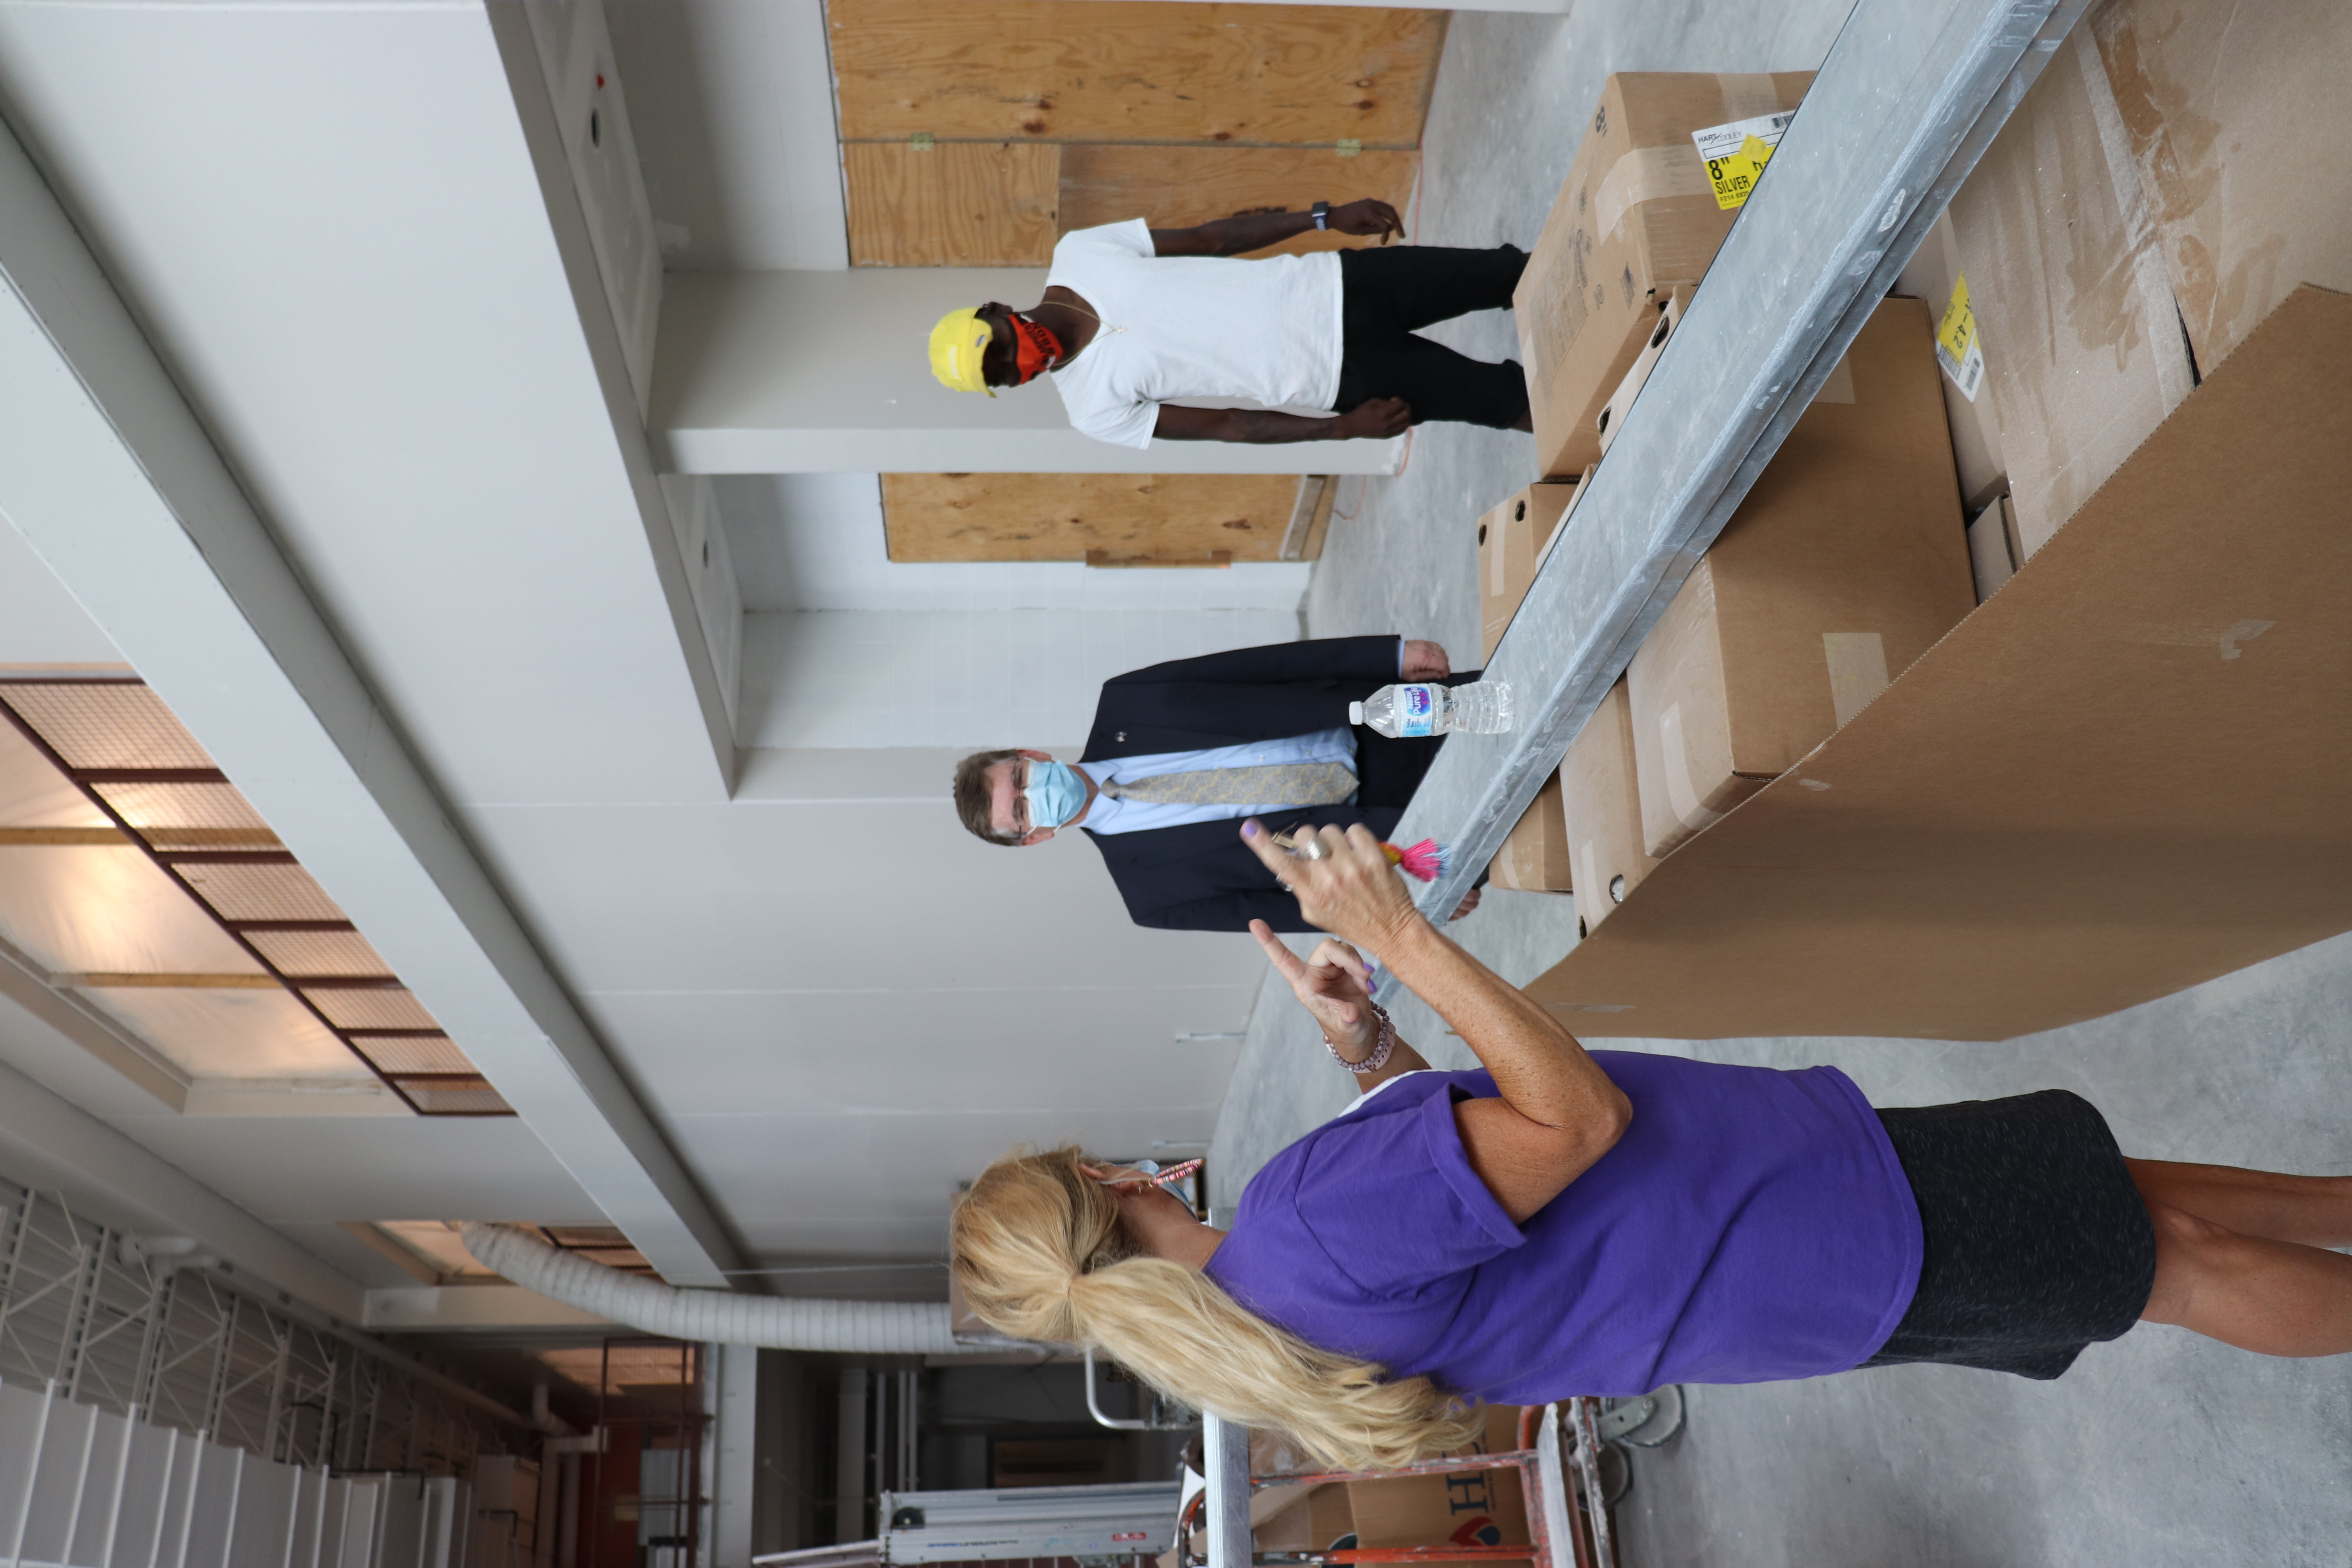 Mayor Takes Tour of New Downtown YMCA